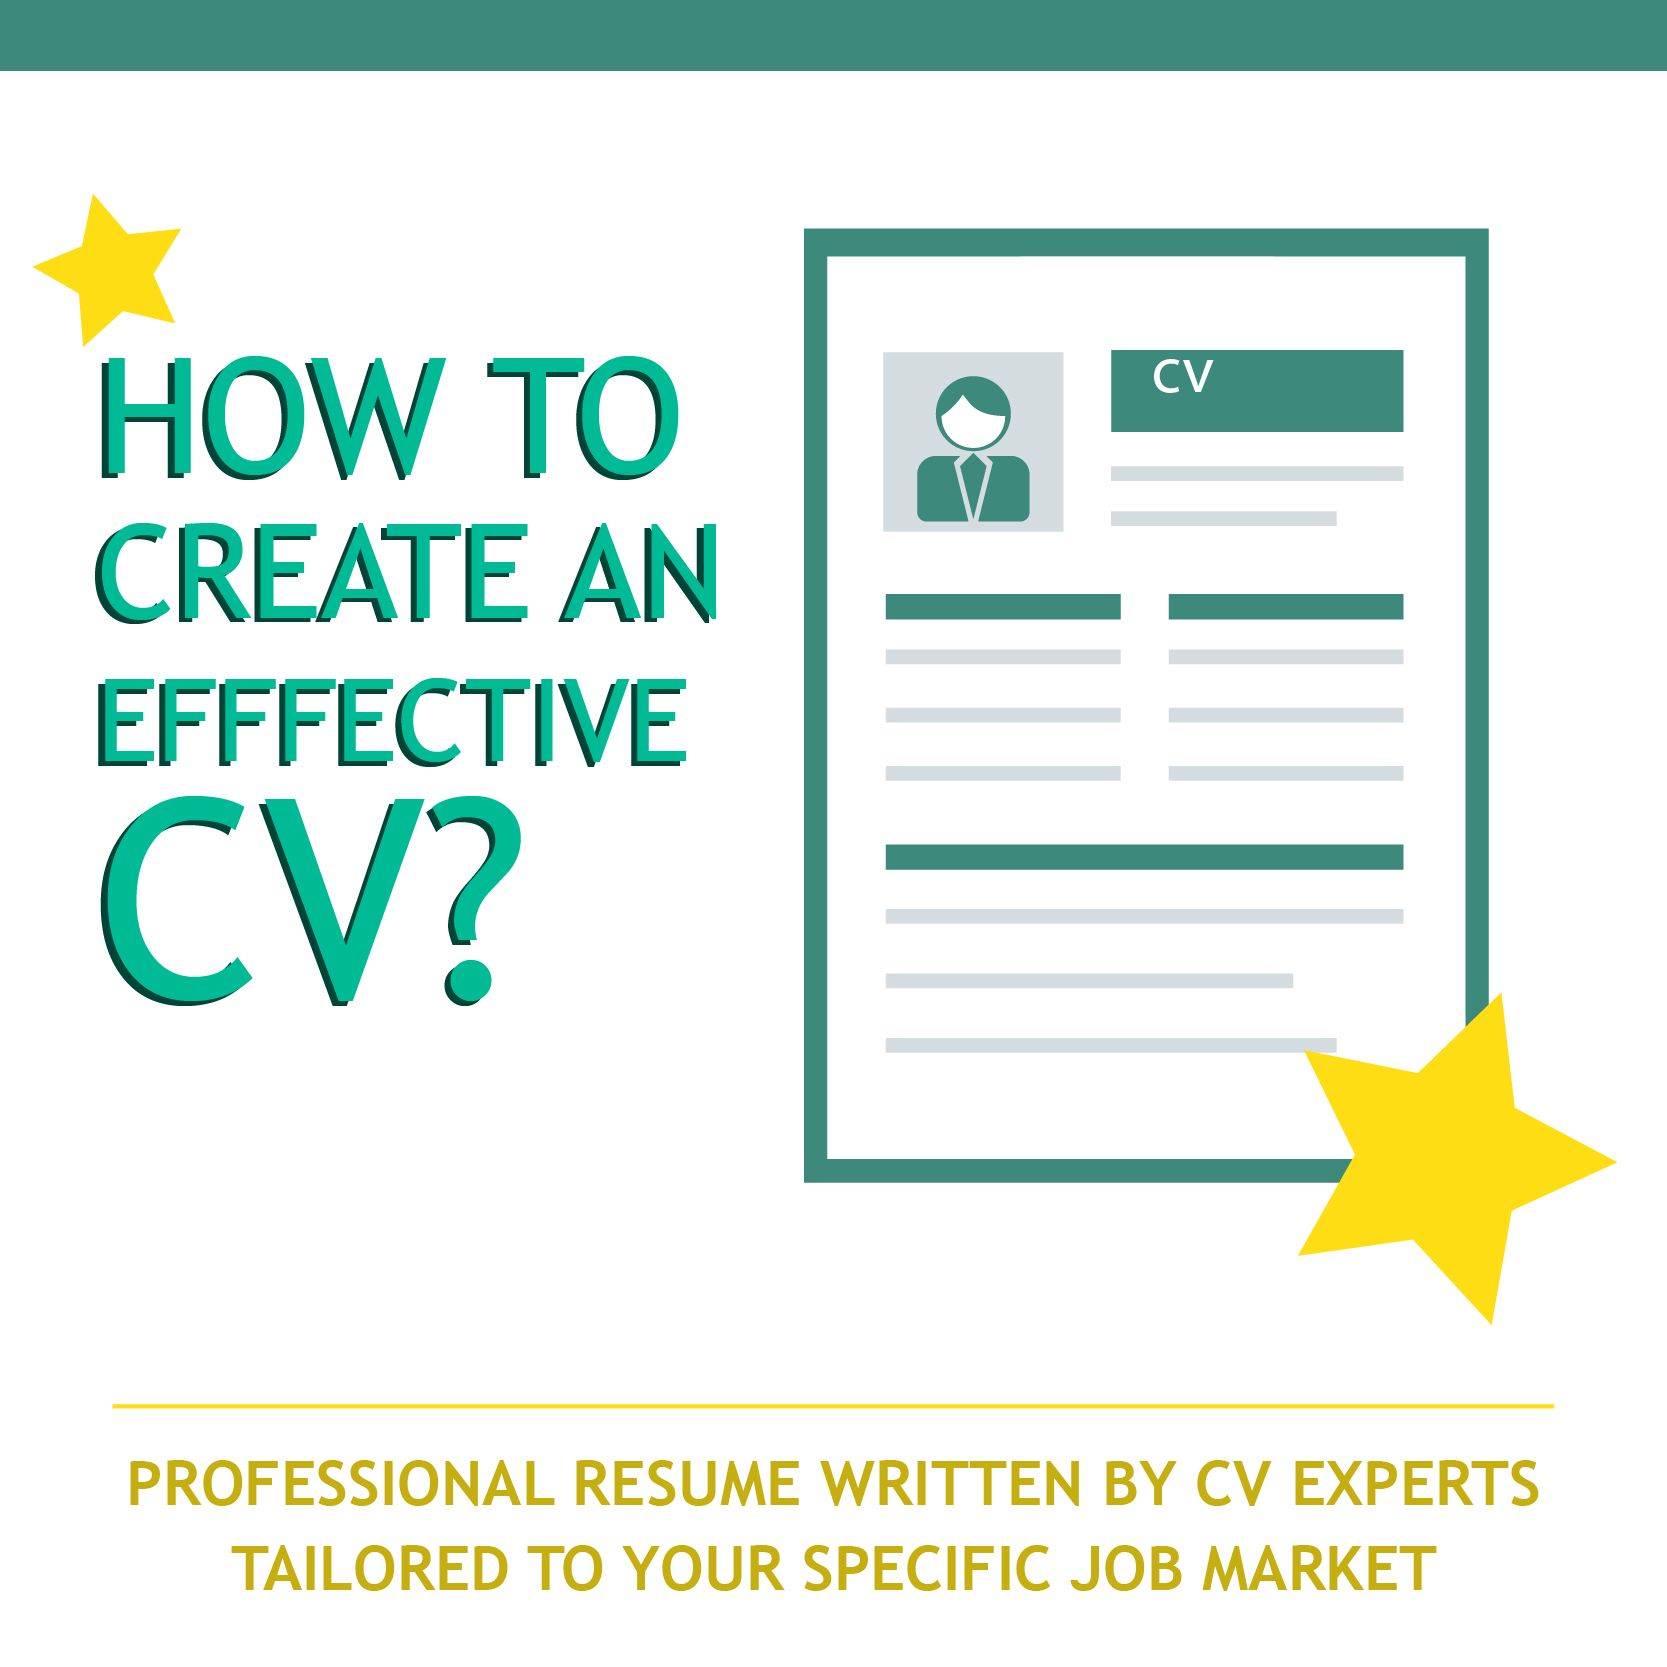 Build A Resume That Gets More Interviews, Guaranteed, With